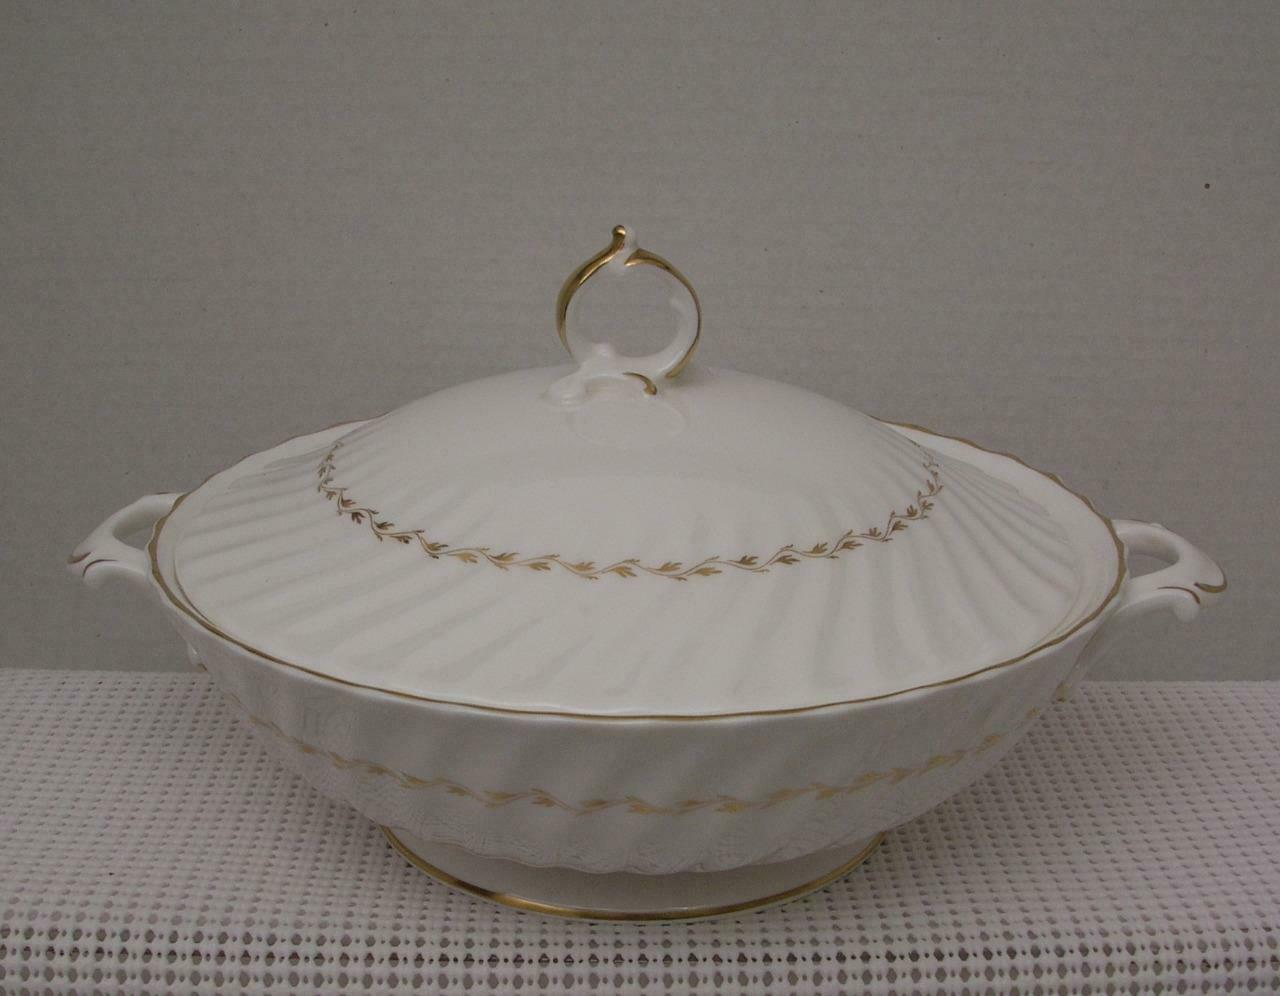 Primary image for ADRIAN by Royal Doulton China ROUND COVERED VEGETETABLE BOWL H.4816 Gold Laurel